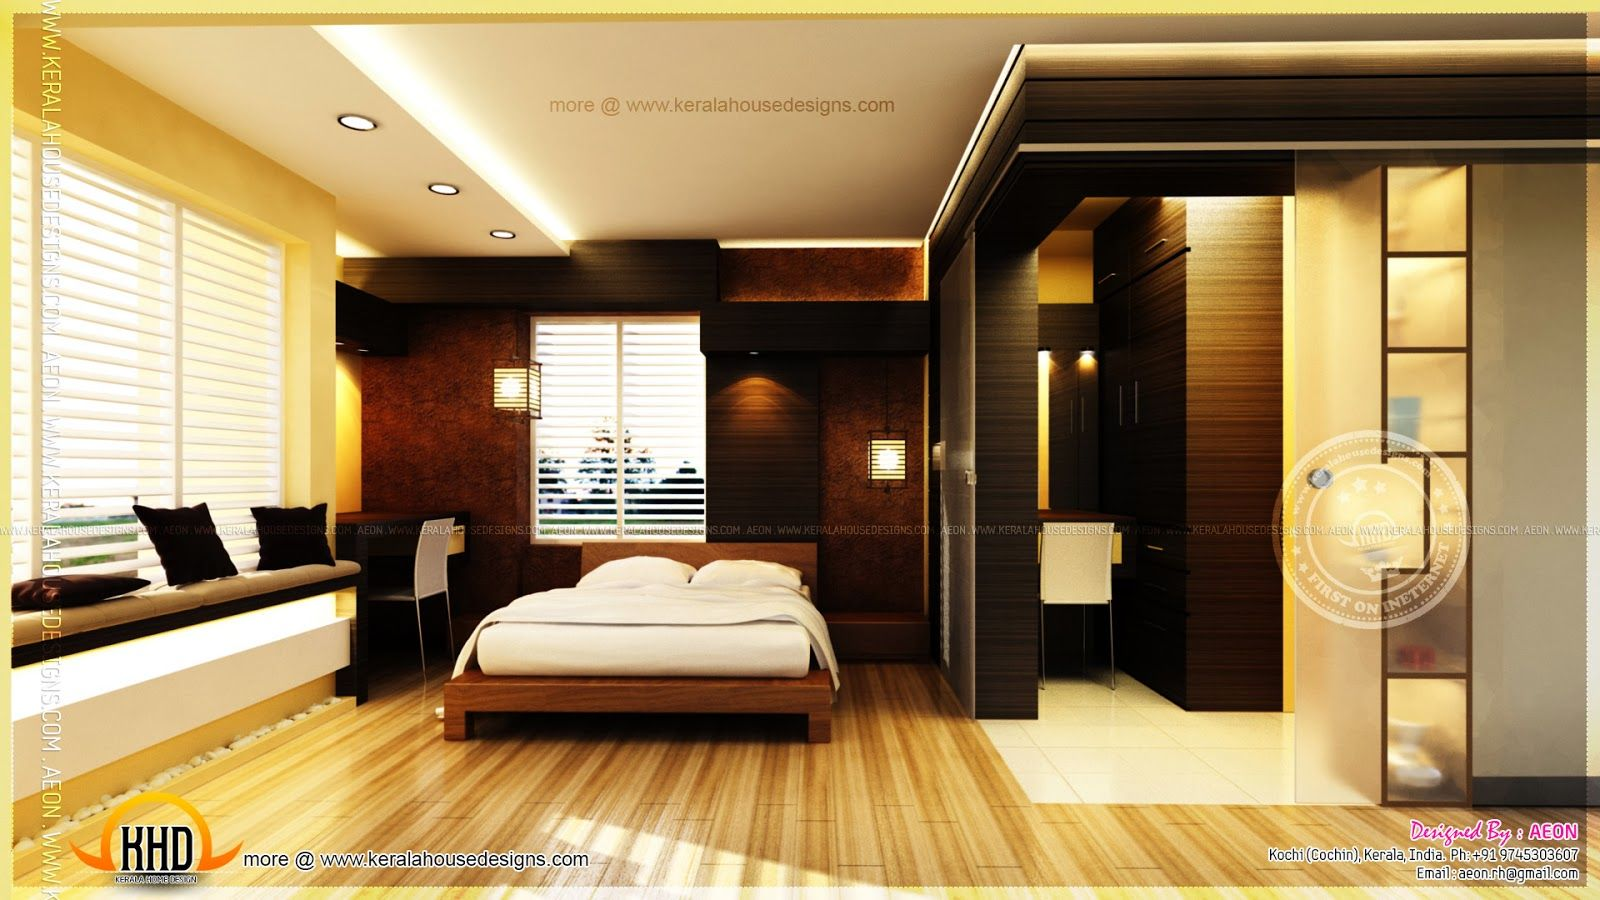 Bedroom Wnętrza Pinterest Bedrooms - Bedroom attached bathroom design